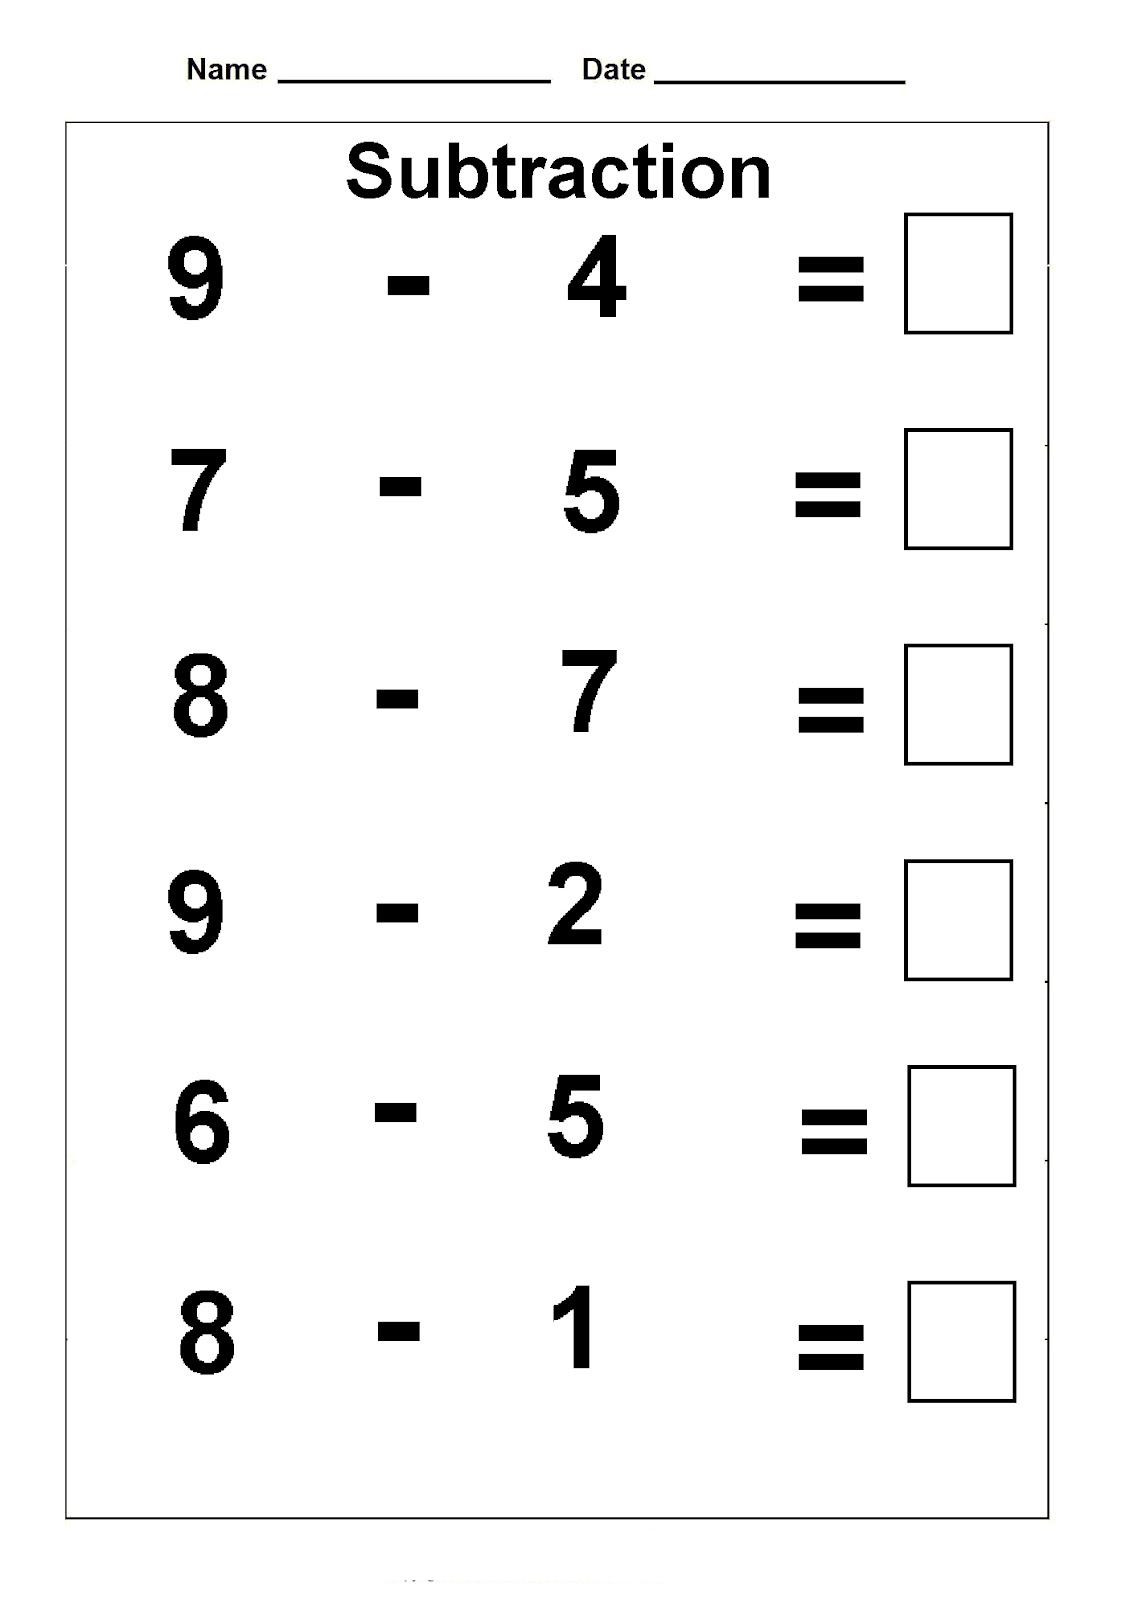 Subtraction Worksheet for 1st Grade 1st Grade Math Worksheets En 2020